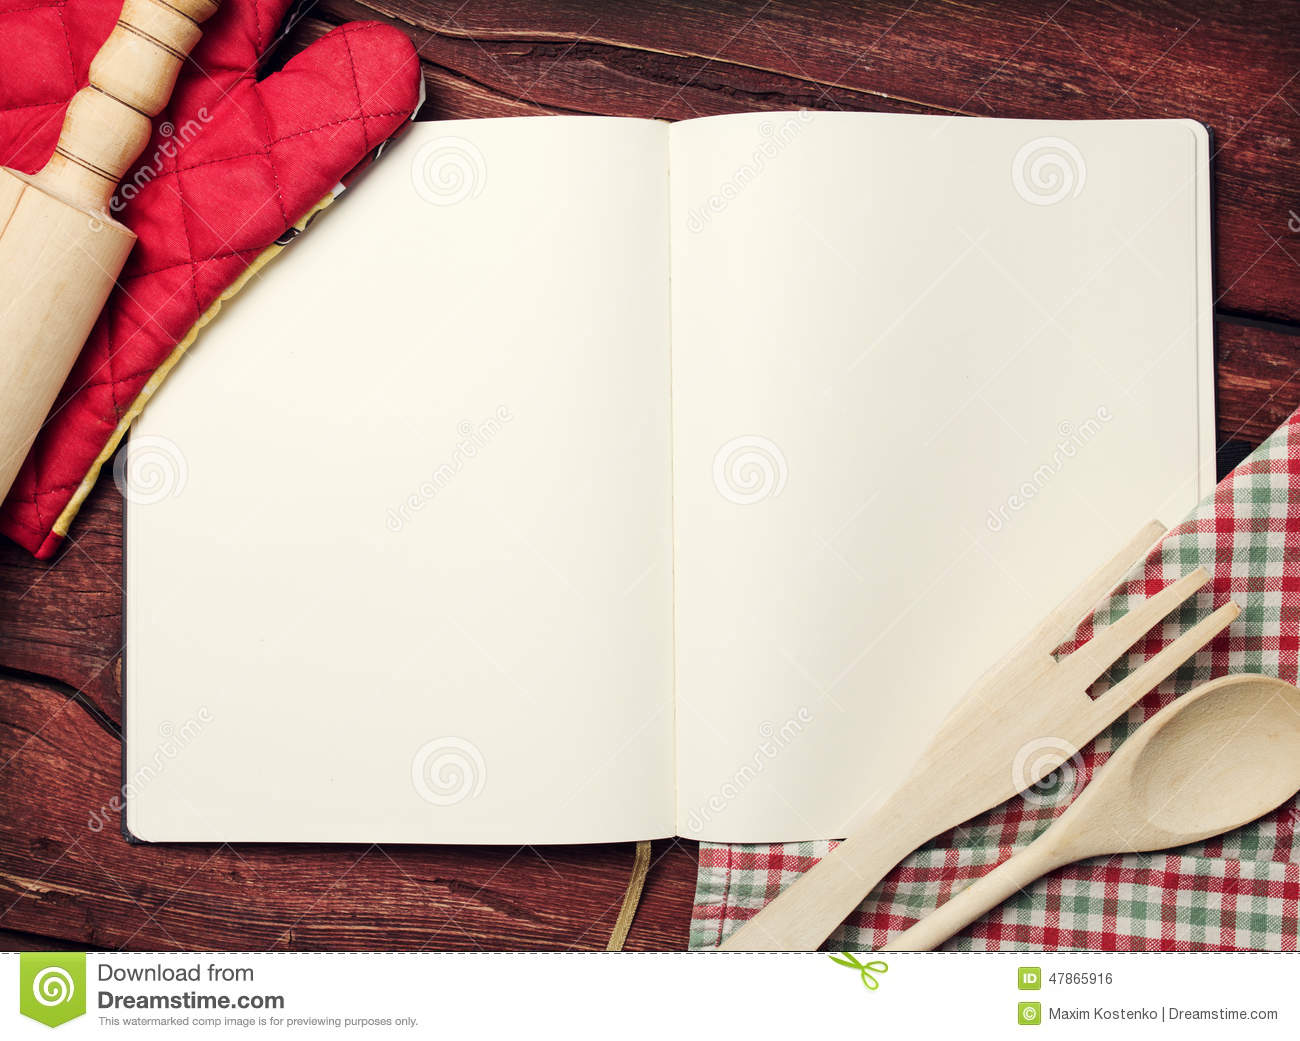 Blank Recipe Book On Table Stock Photo - Image: 47865916